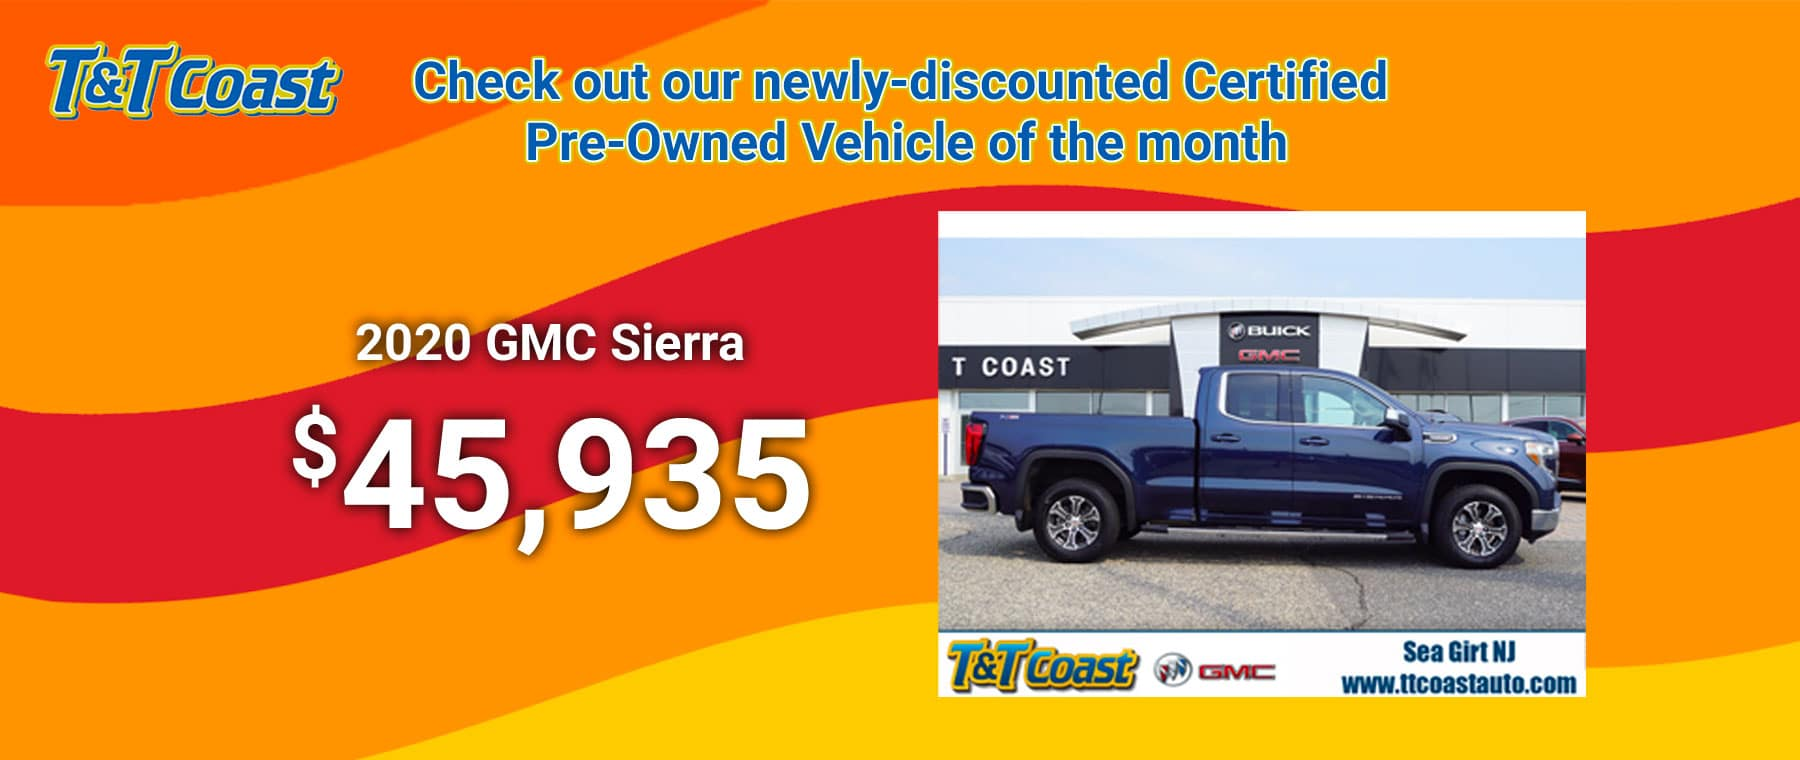 Check out our newly-discounted Certified Pre-Owned Vehicles of the month at T&T Coast Buick GMC, 2020 GMC Sierra 1500 $45,935